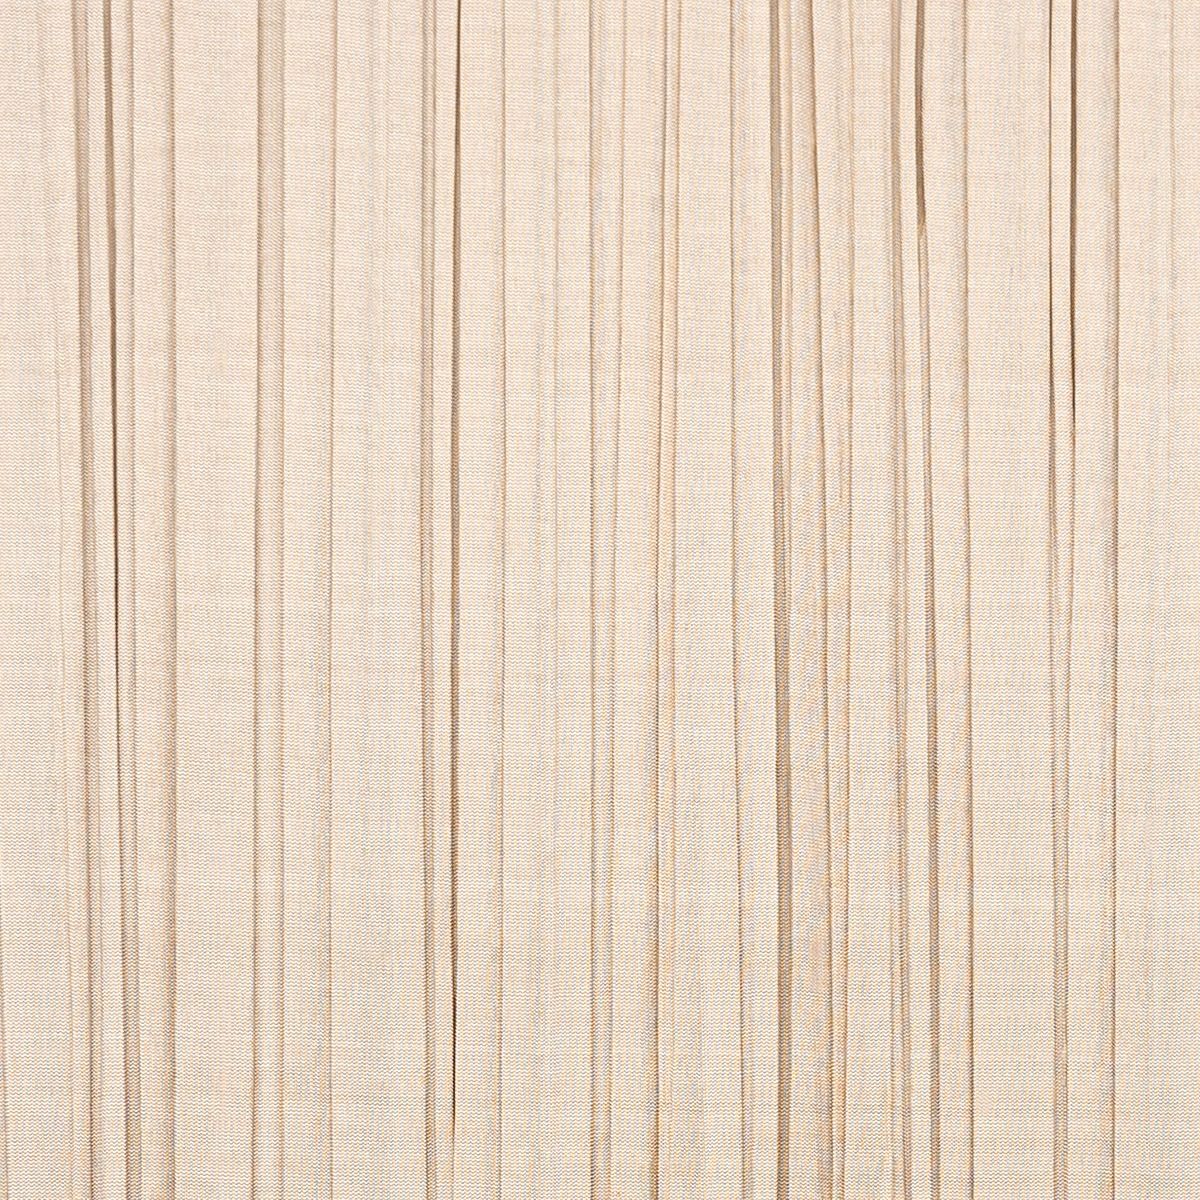 Regal Silks-Blanched Almond 38000/103